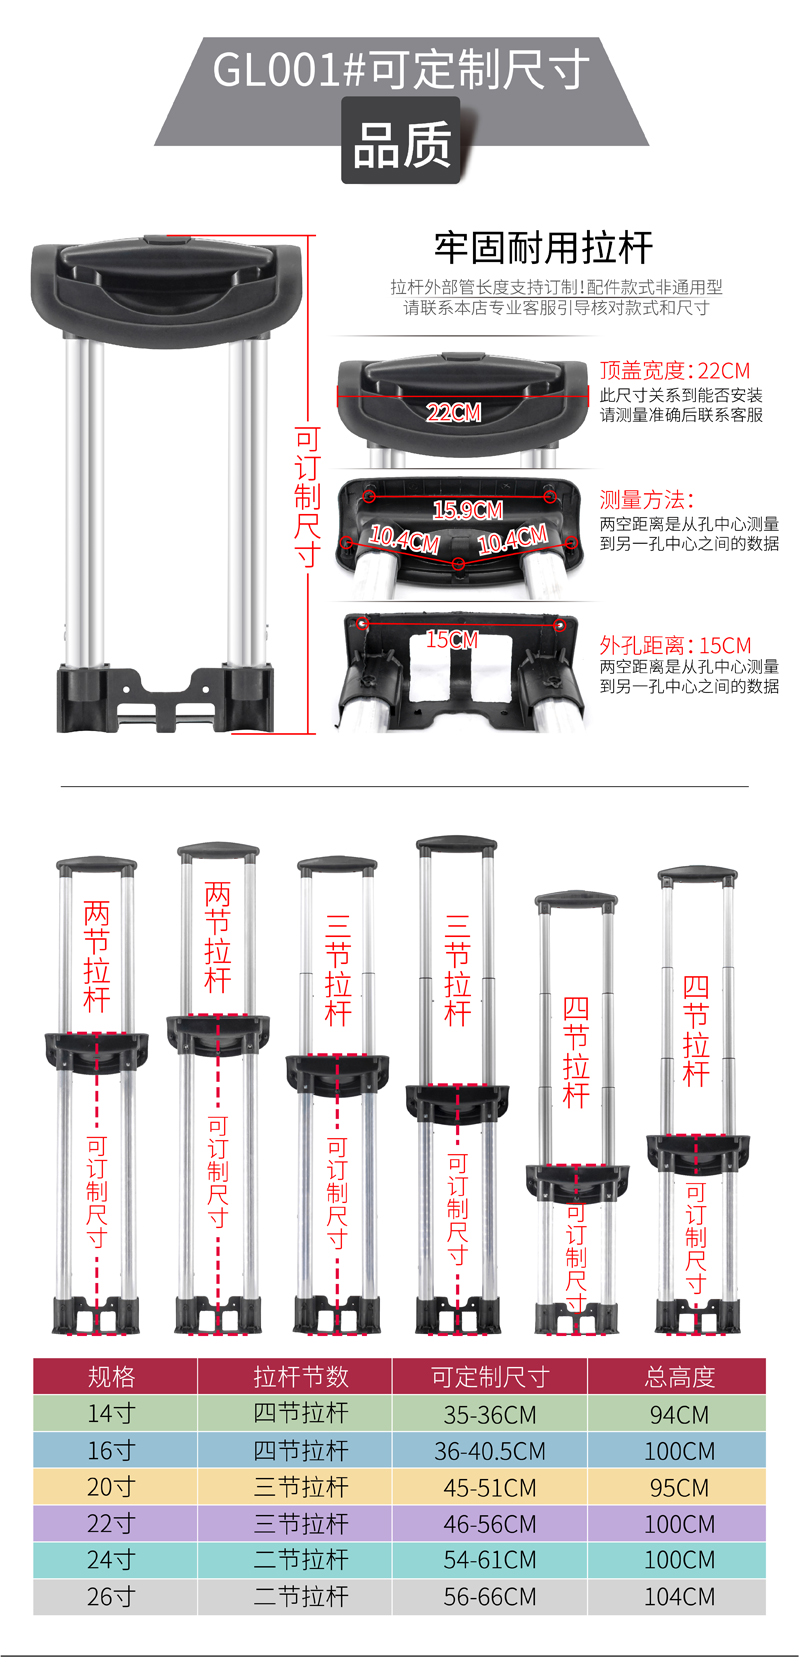 Telescopic Suitcase Luggage Bag Parts Trolley/Handles Suitcases Replacement Telescopic Rods Luggage Handle Repair AccessoriesTelescopic Suitcase Luggage Bag Parts Trolley/Handles Suitcases Replacement Telescopic Rods Luggage Handle Repair Accessories